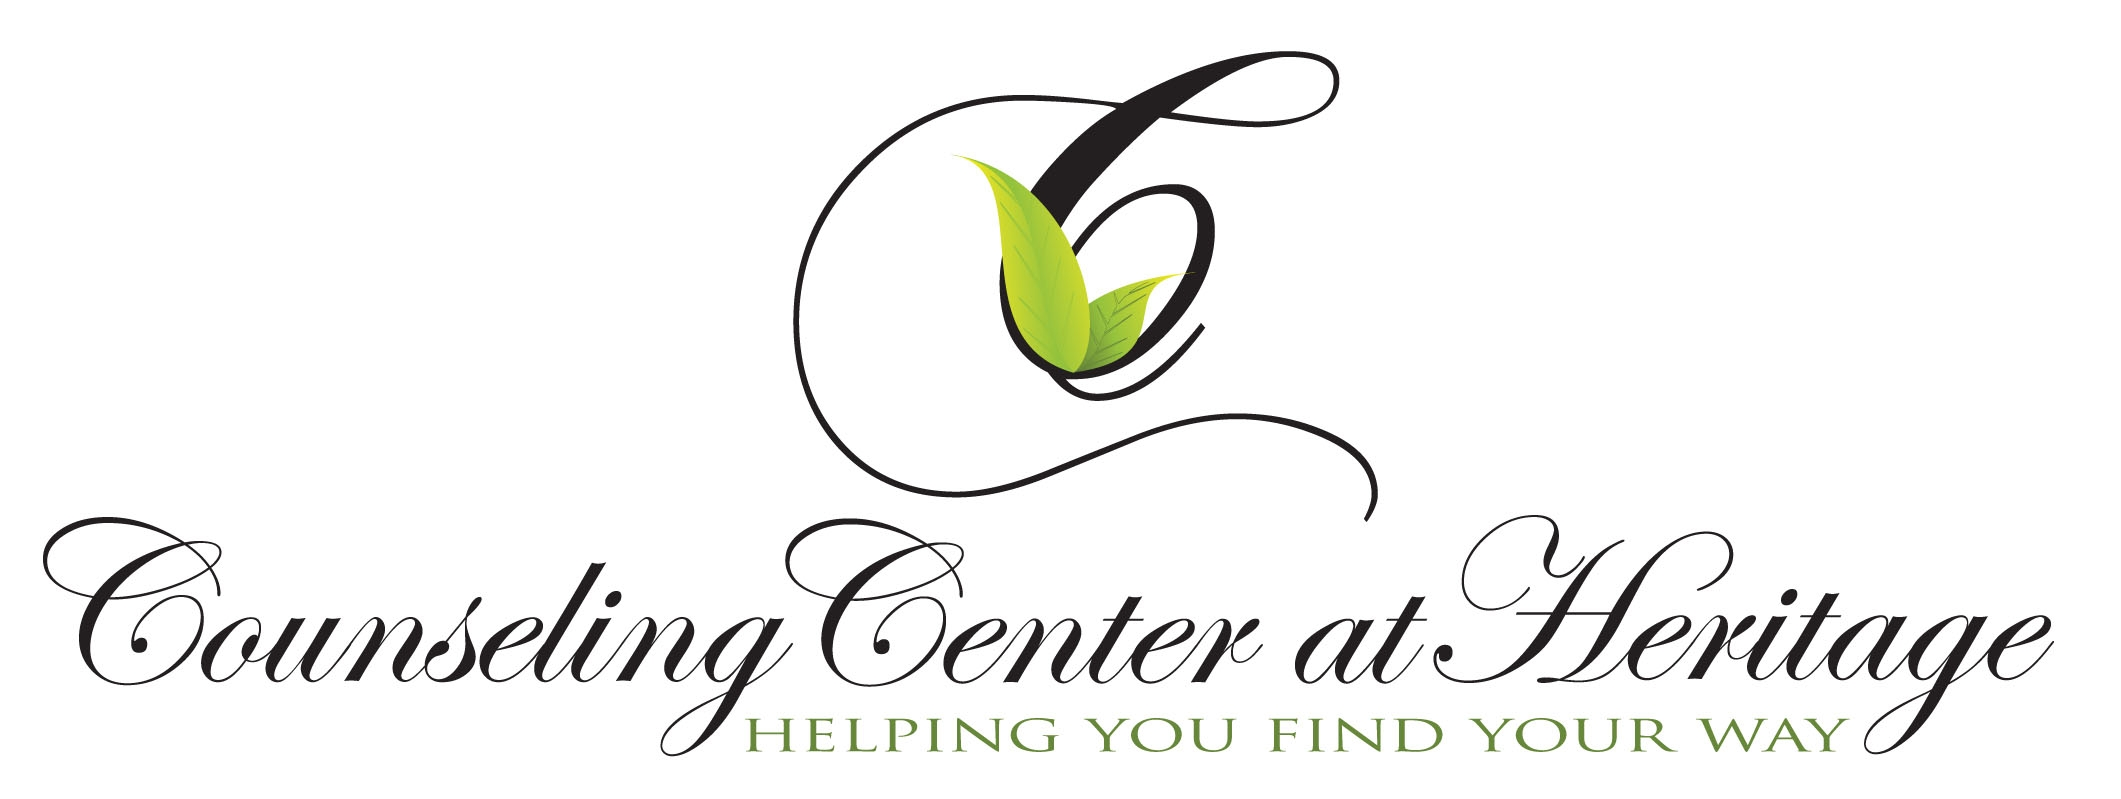 Counseling Center at Heritage